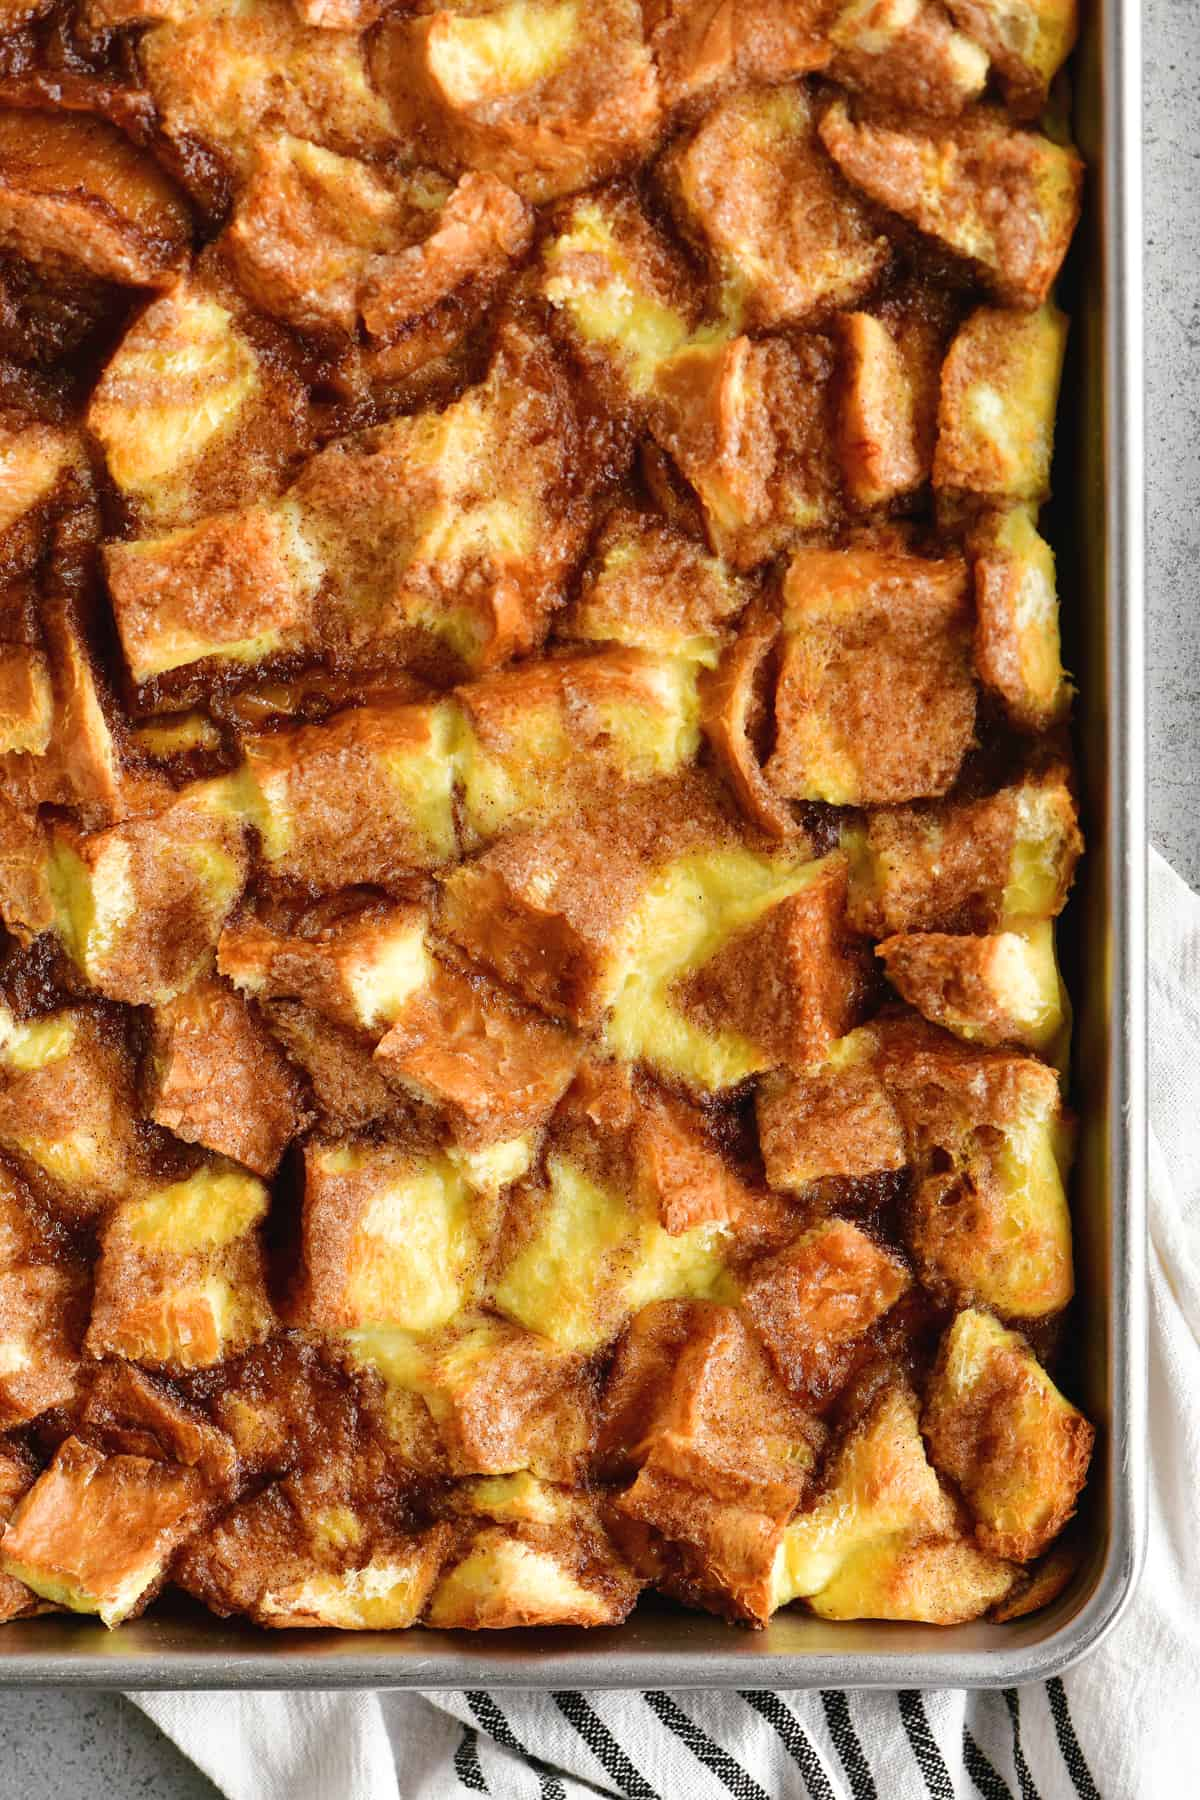 a topdown photo of the french toast casserole in a pan